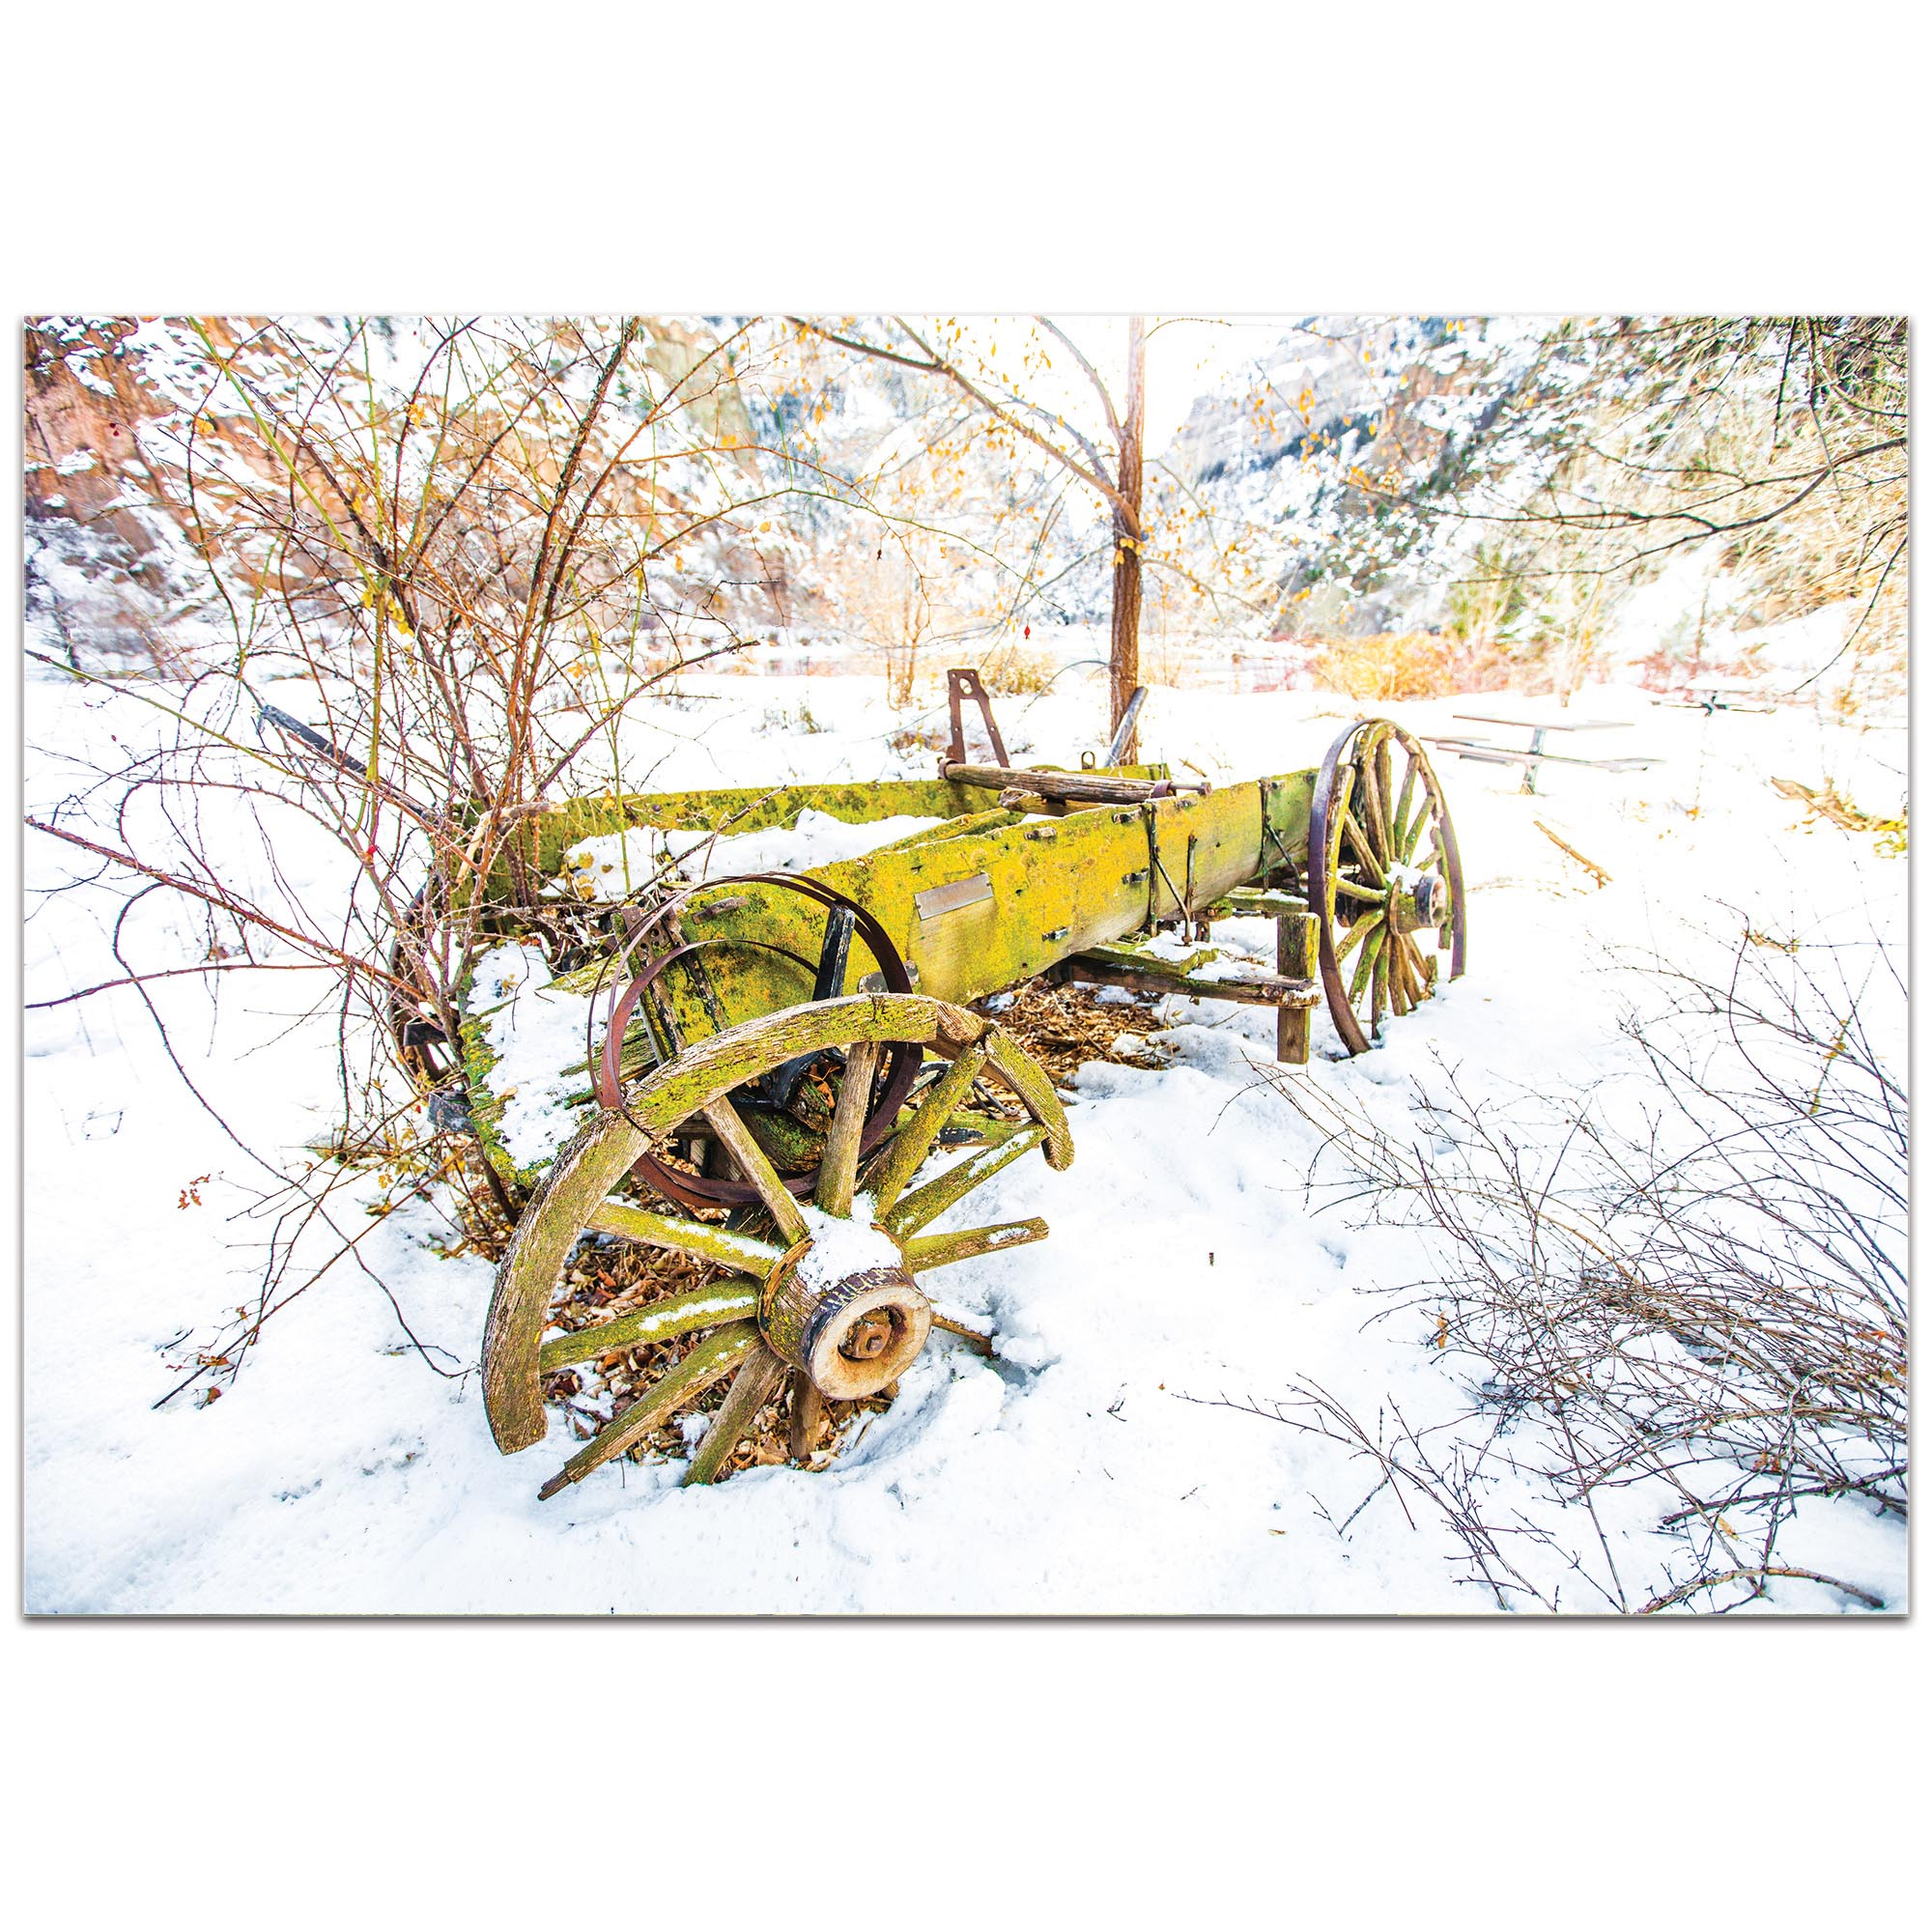 Western Wall Art 'Wagon Ruins' - Farm Landscape Decor on Metal or Plexiglass - Image 2